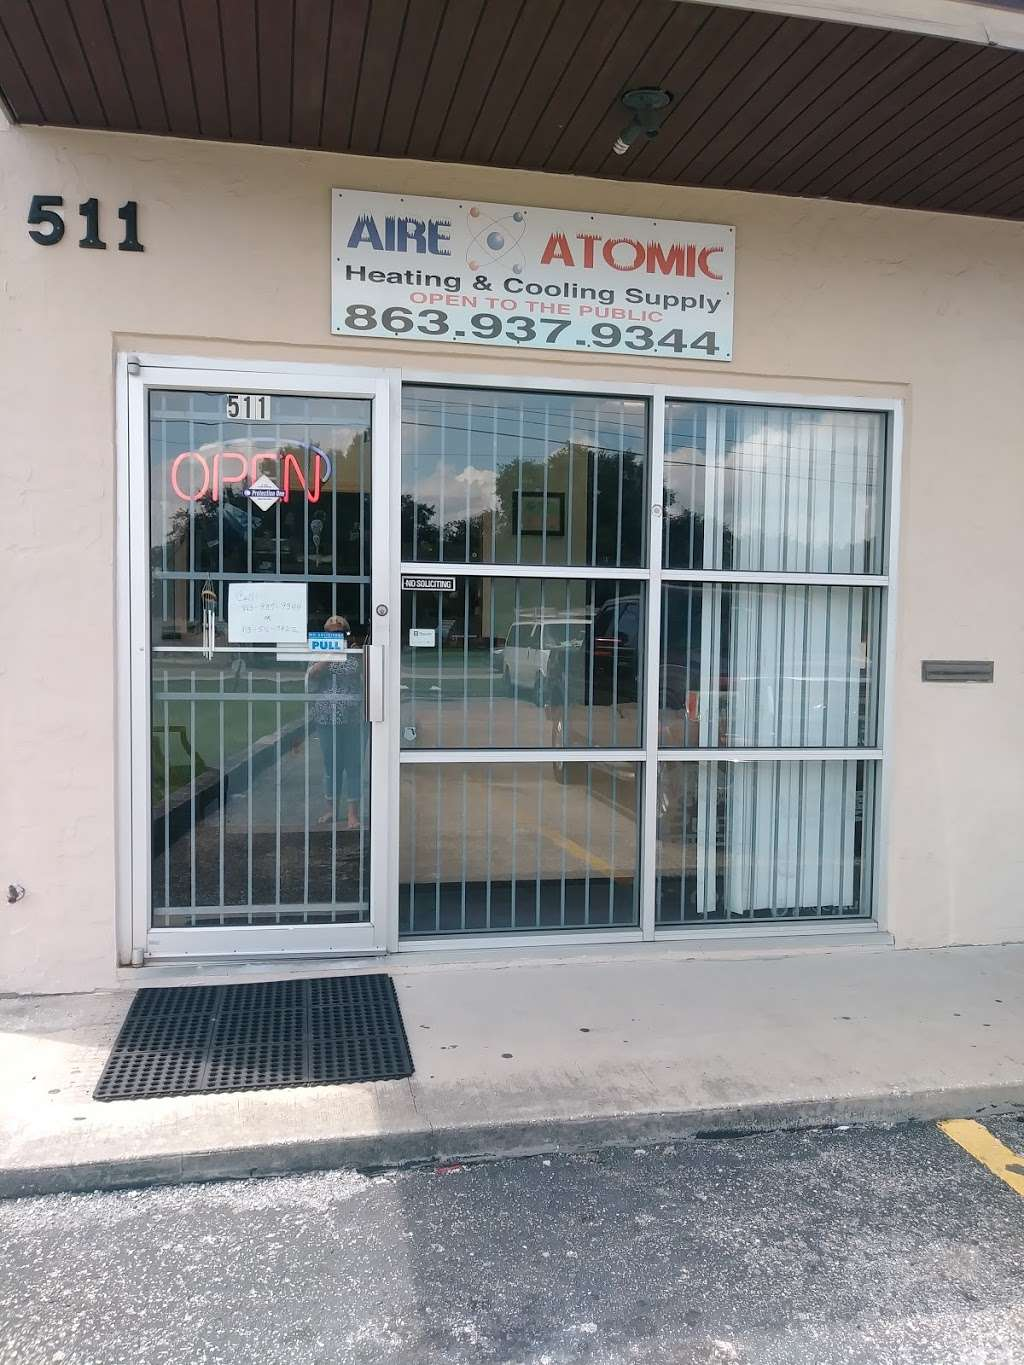 Aire Atomic Heating & Cooling Supply - store    Photo 1 of 2   Address: 511 S Combee Rd, Lakeland, FL 33801, USA   Phone: (863) 937-9344